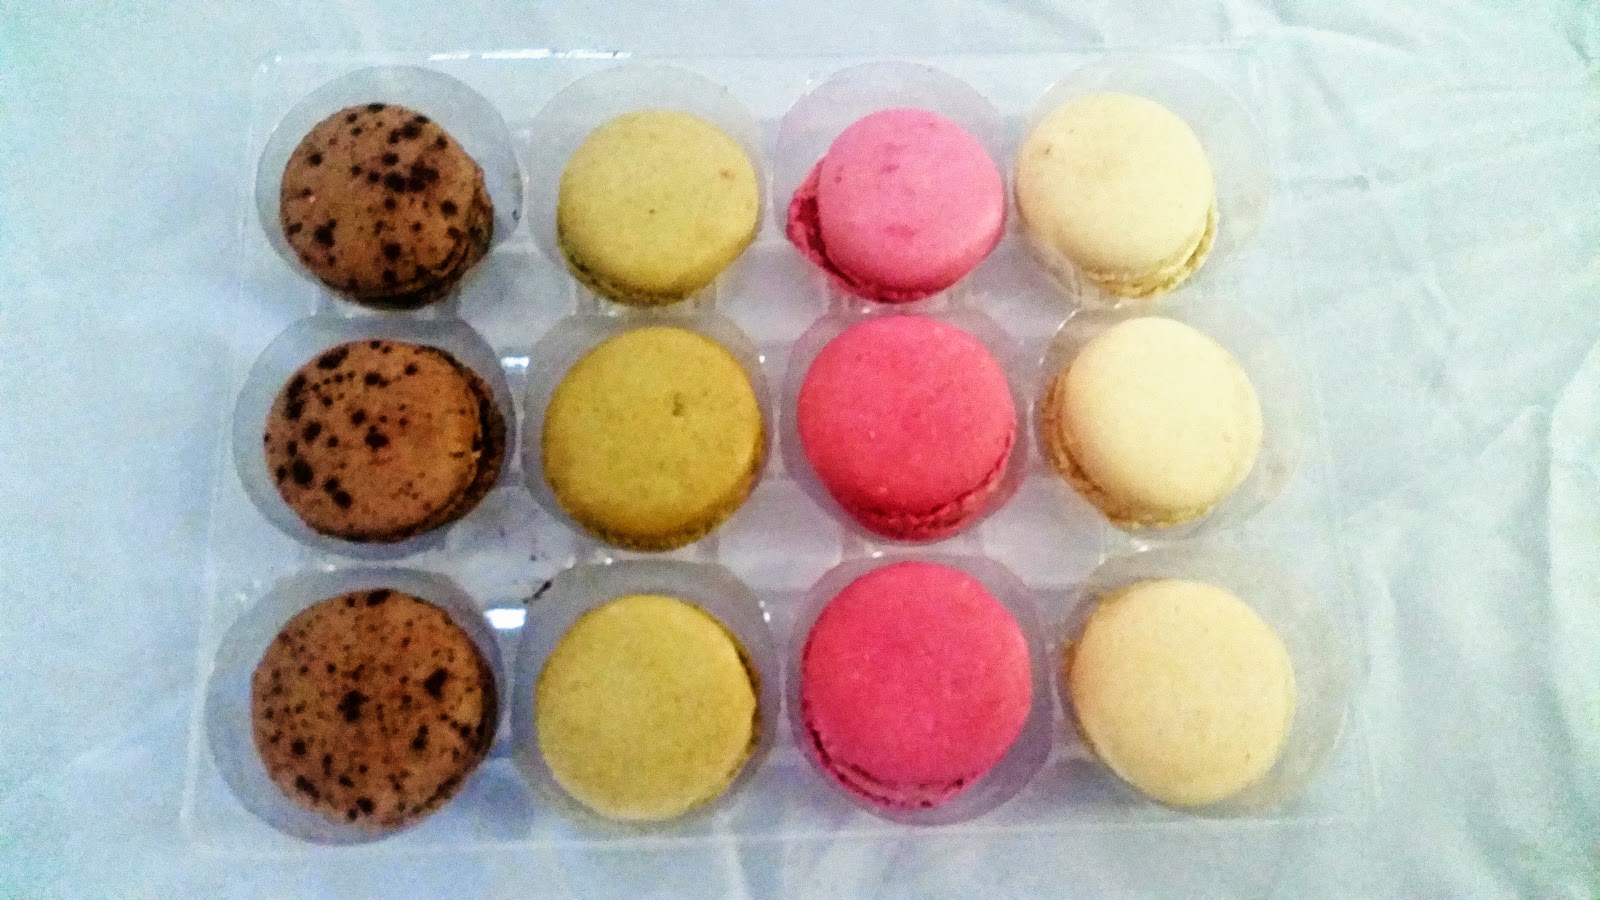 LOOKA Patisserie French Desserts Review and Giveaway Ends 7/14- #macarons via ProductReviewMom.com